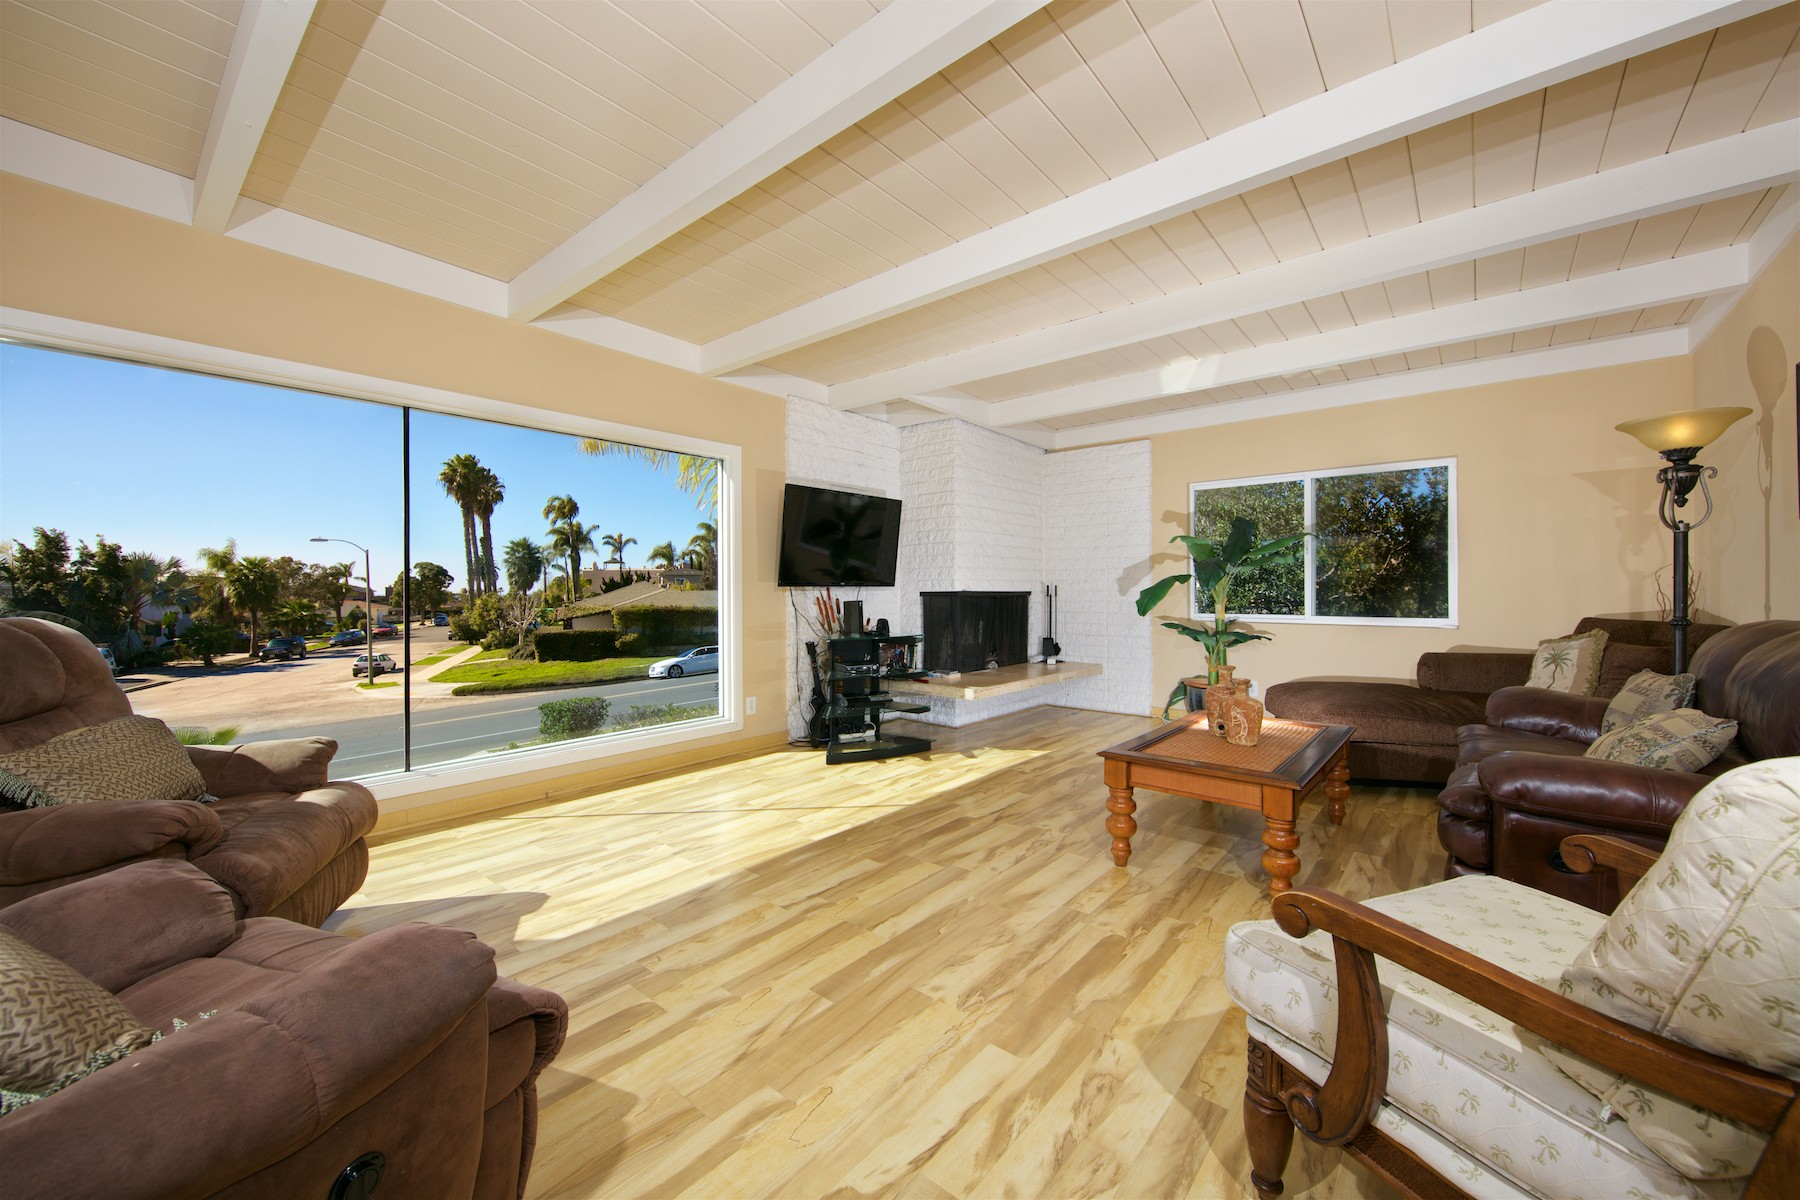 Additional photo for property listing at 5041 Foothill Blvd  San Diego, California 92109 United States